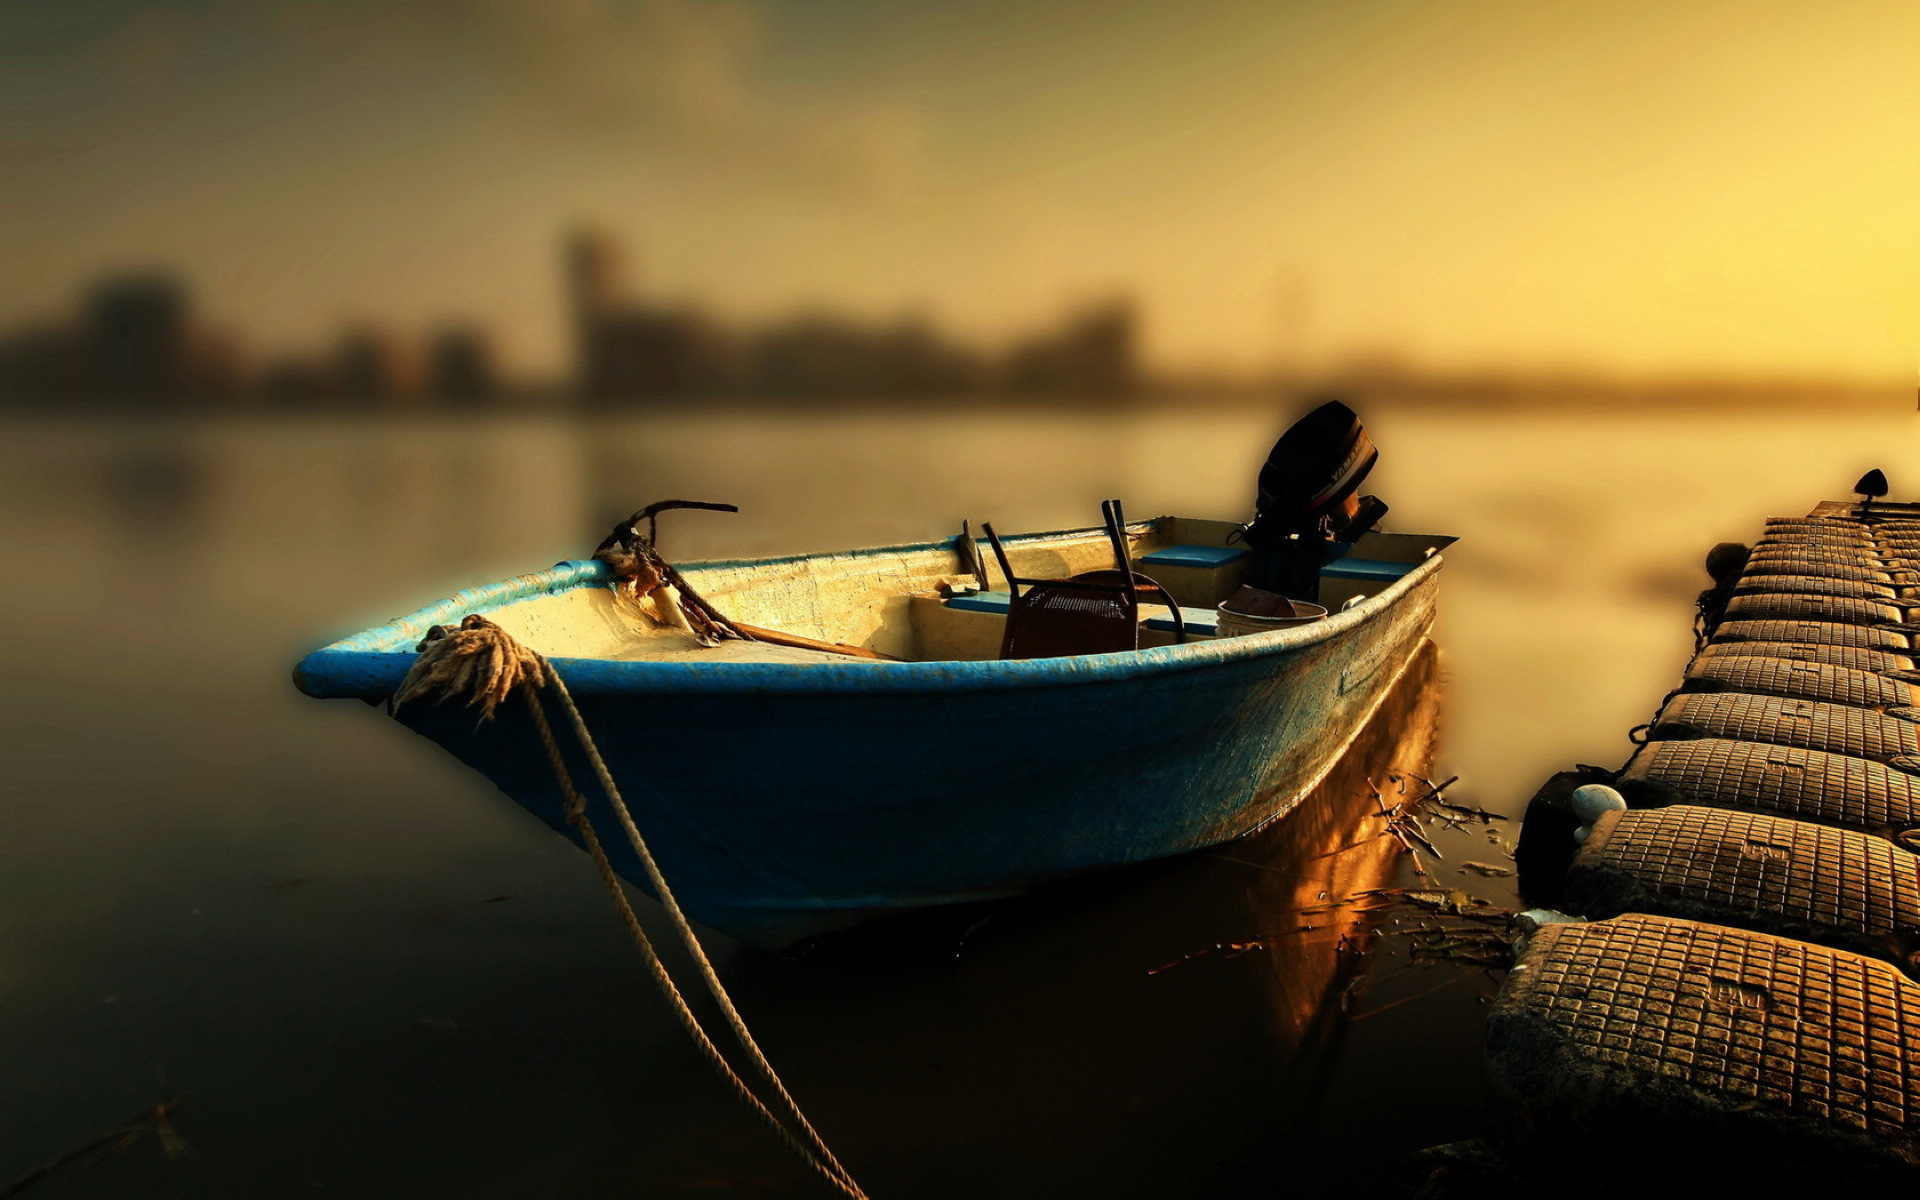 Peaceful Boat Wallpaper